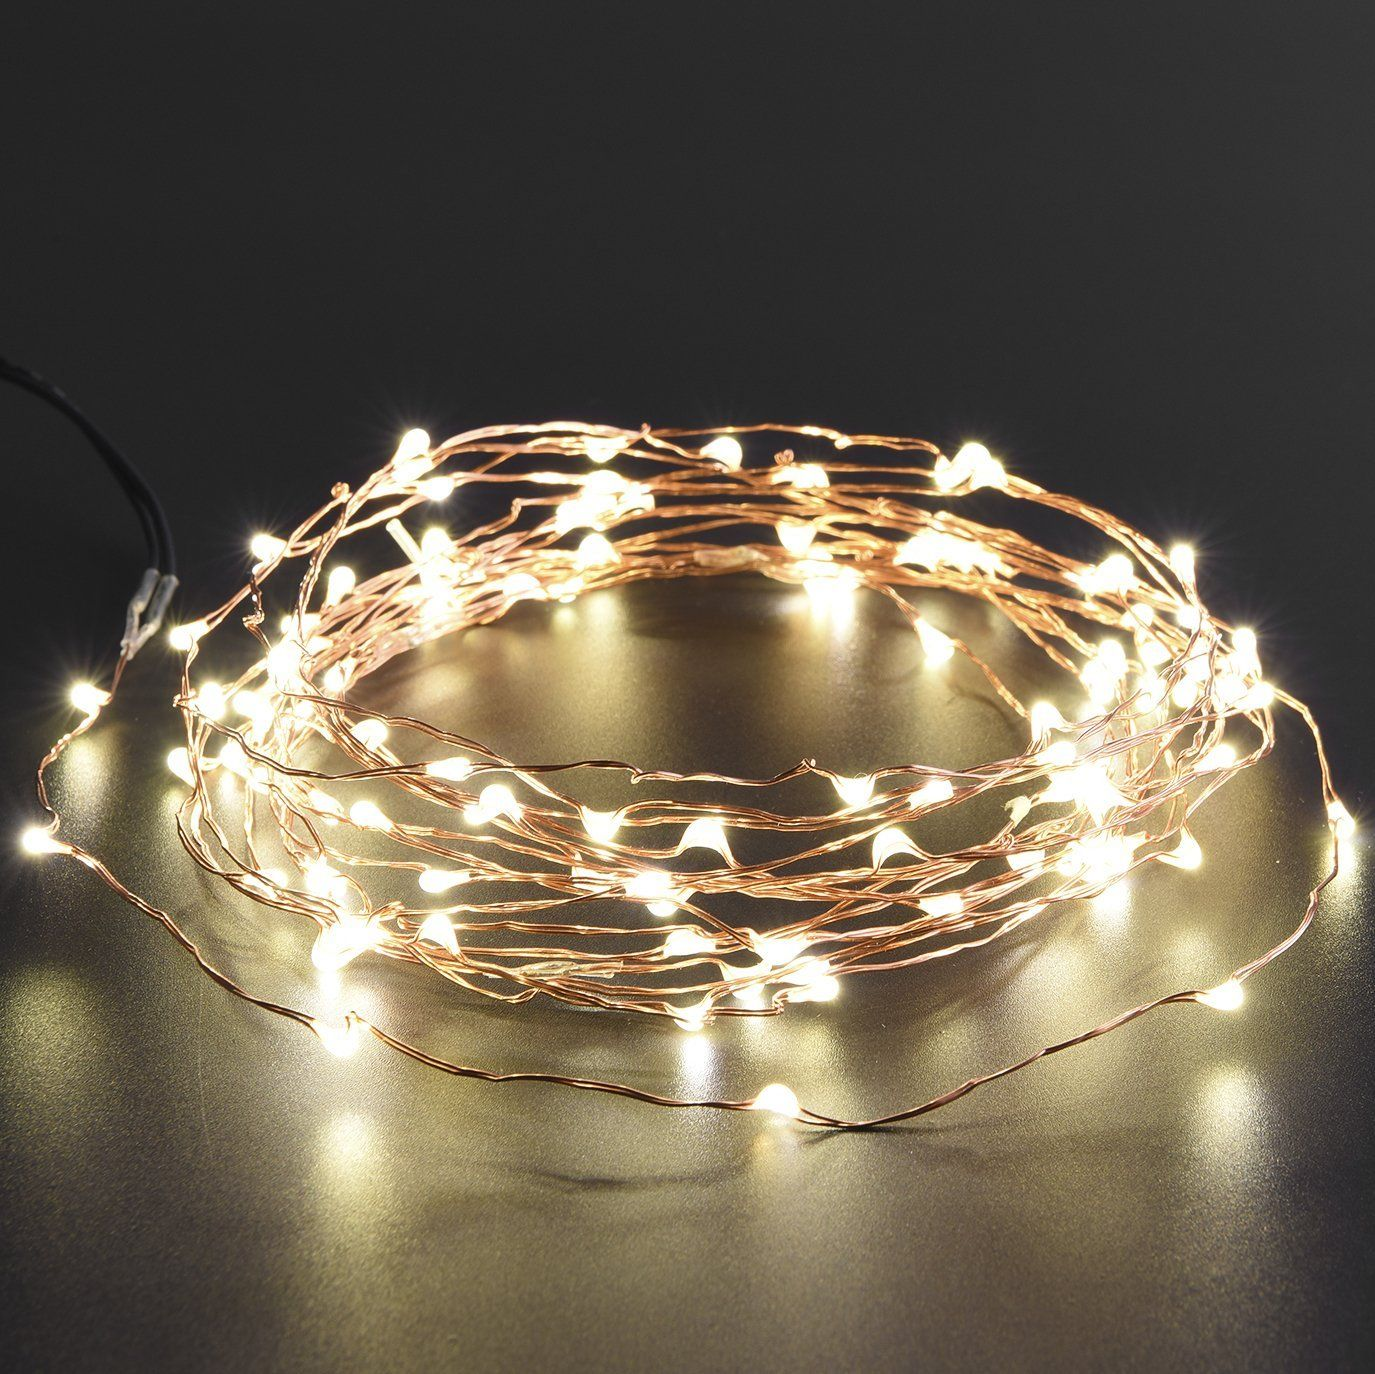 best solar powered string lights top 5 reviews http